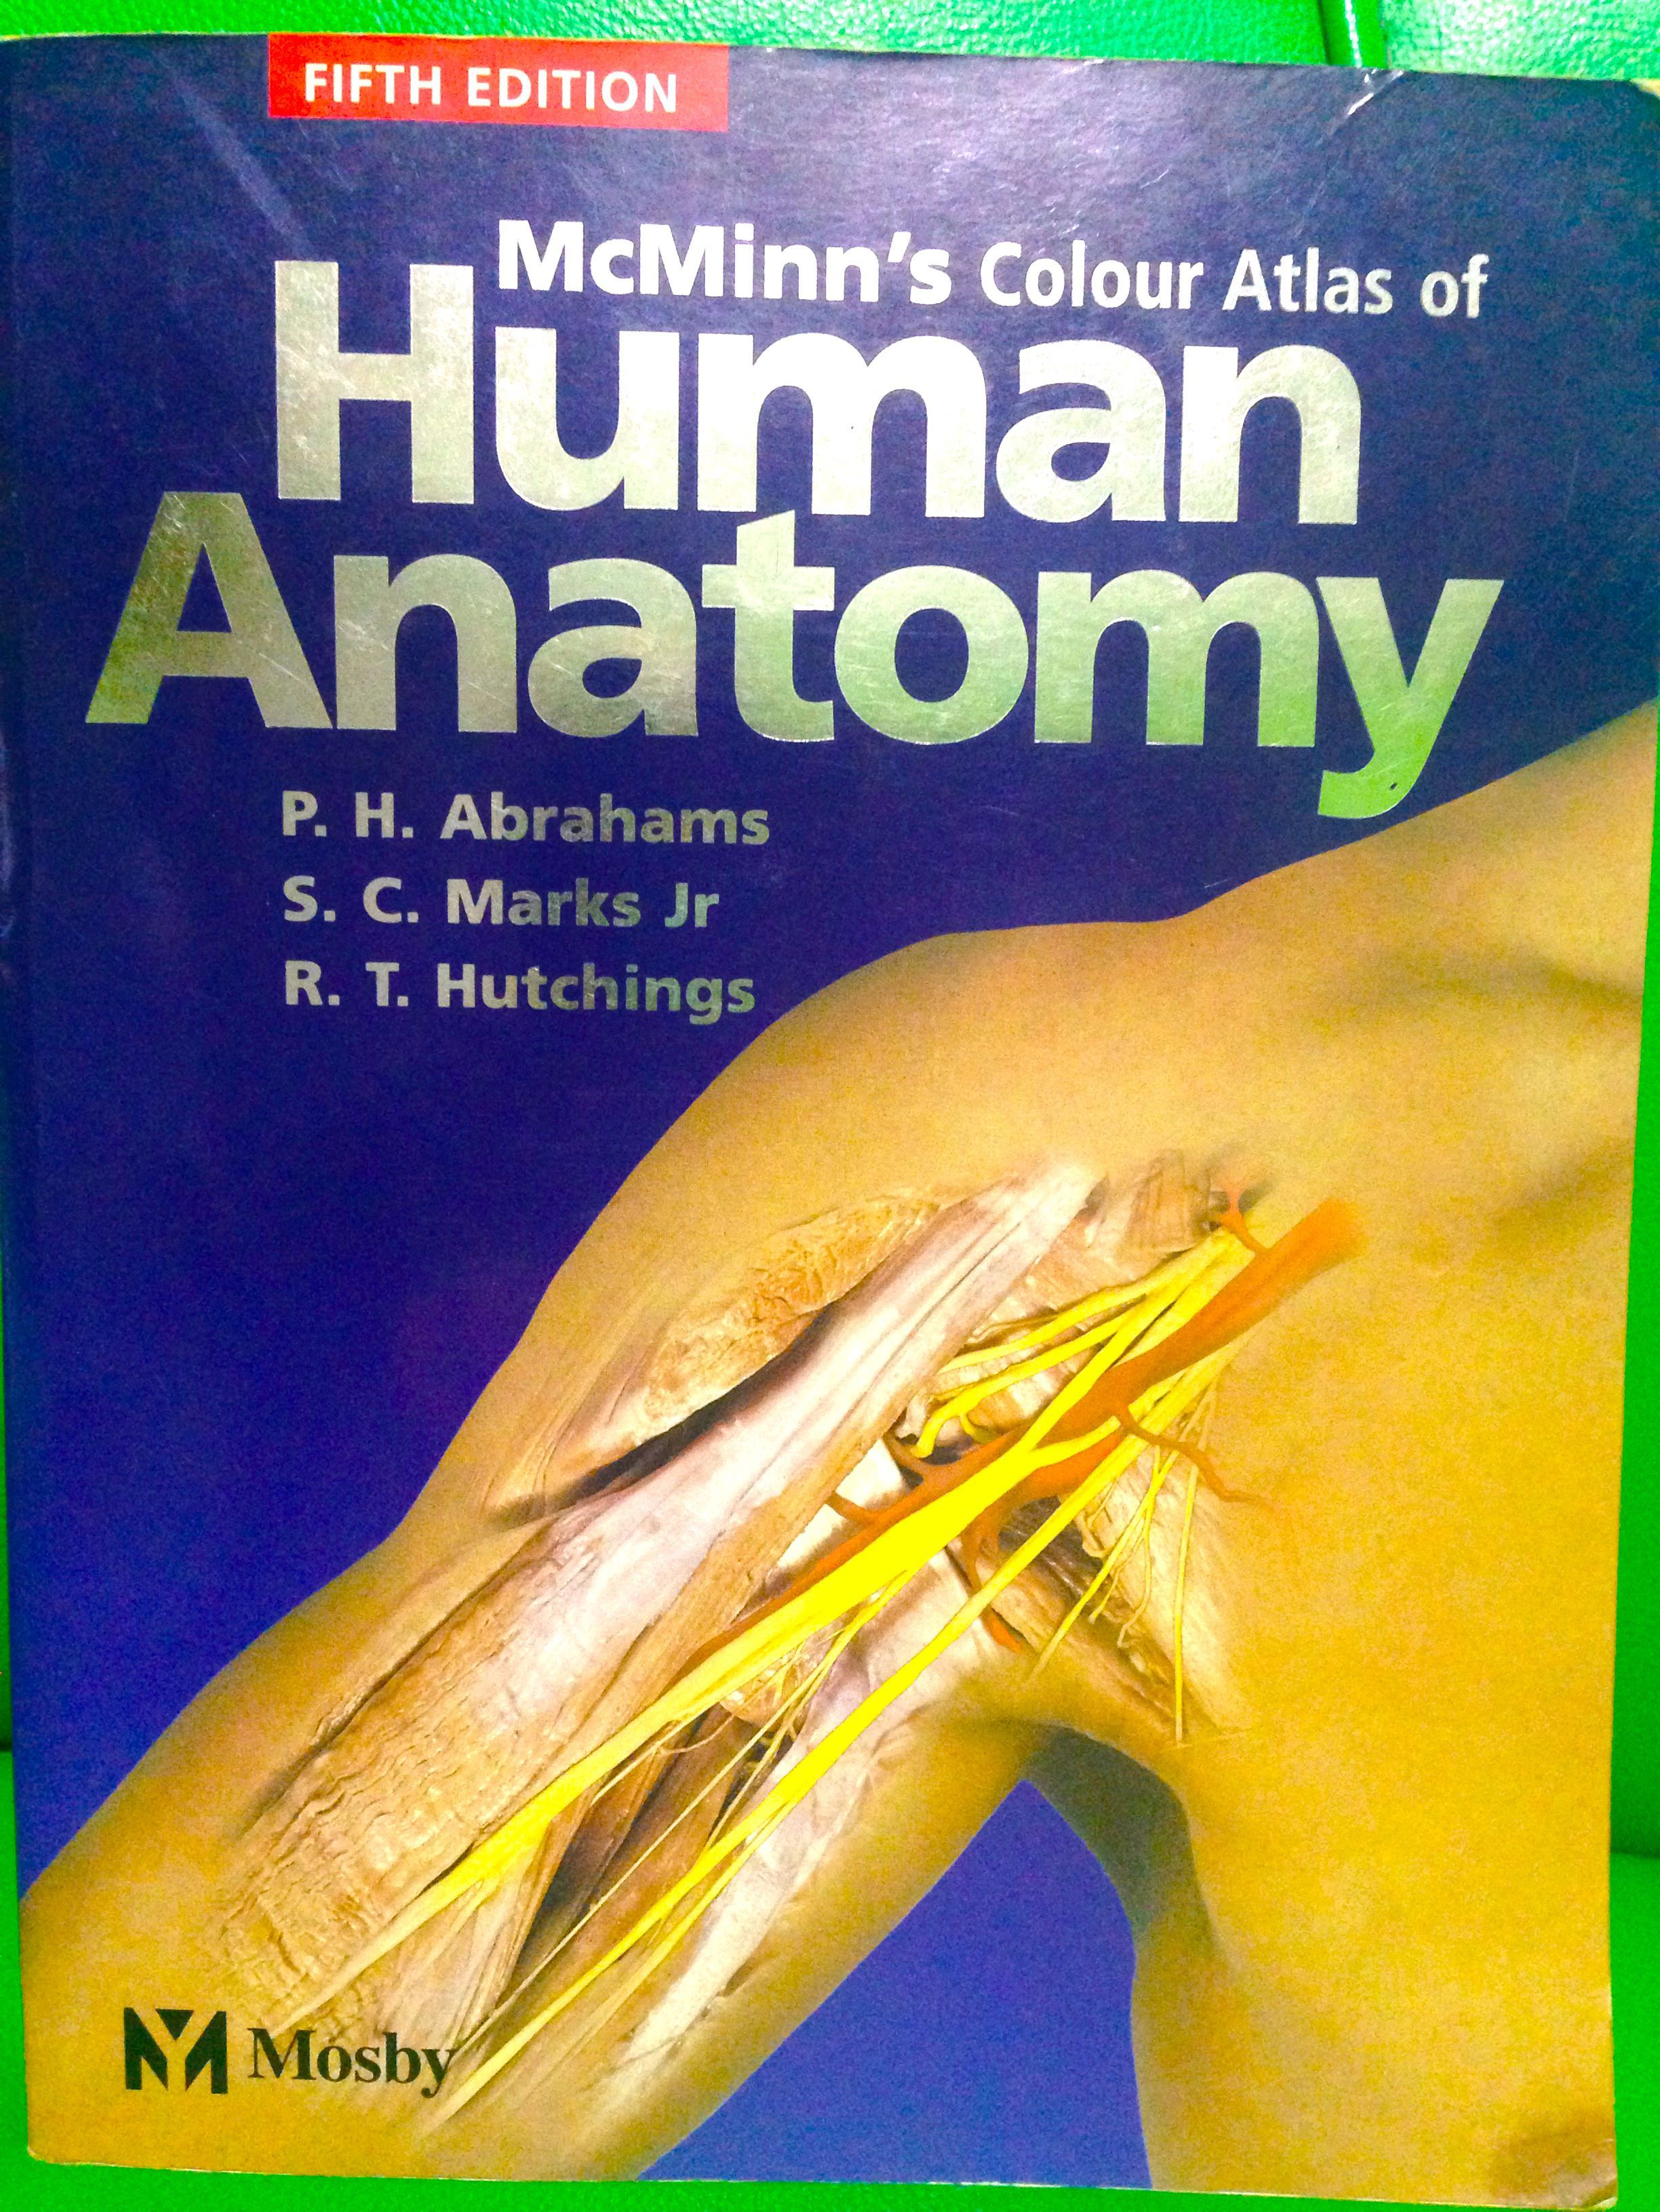 The color atlas of human anatomy 4362232 - follow4more.info